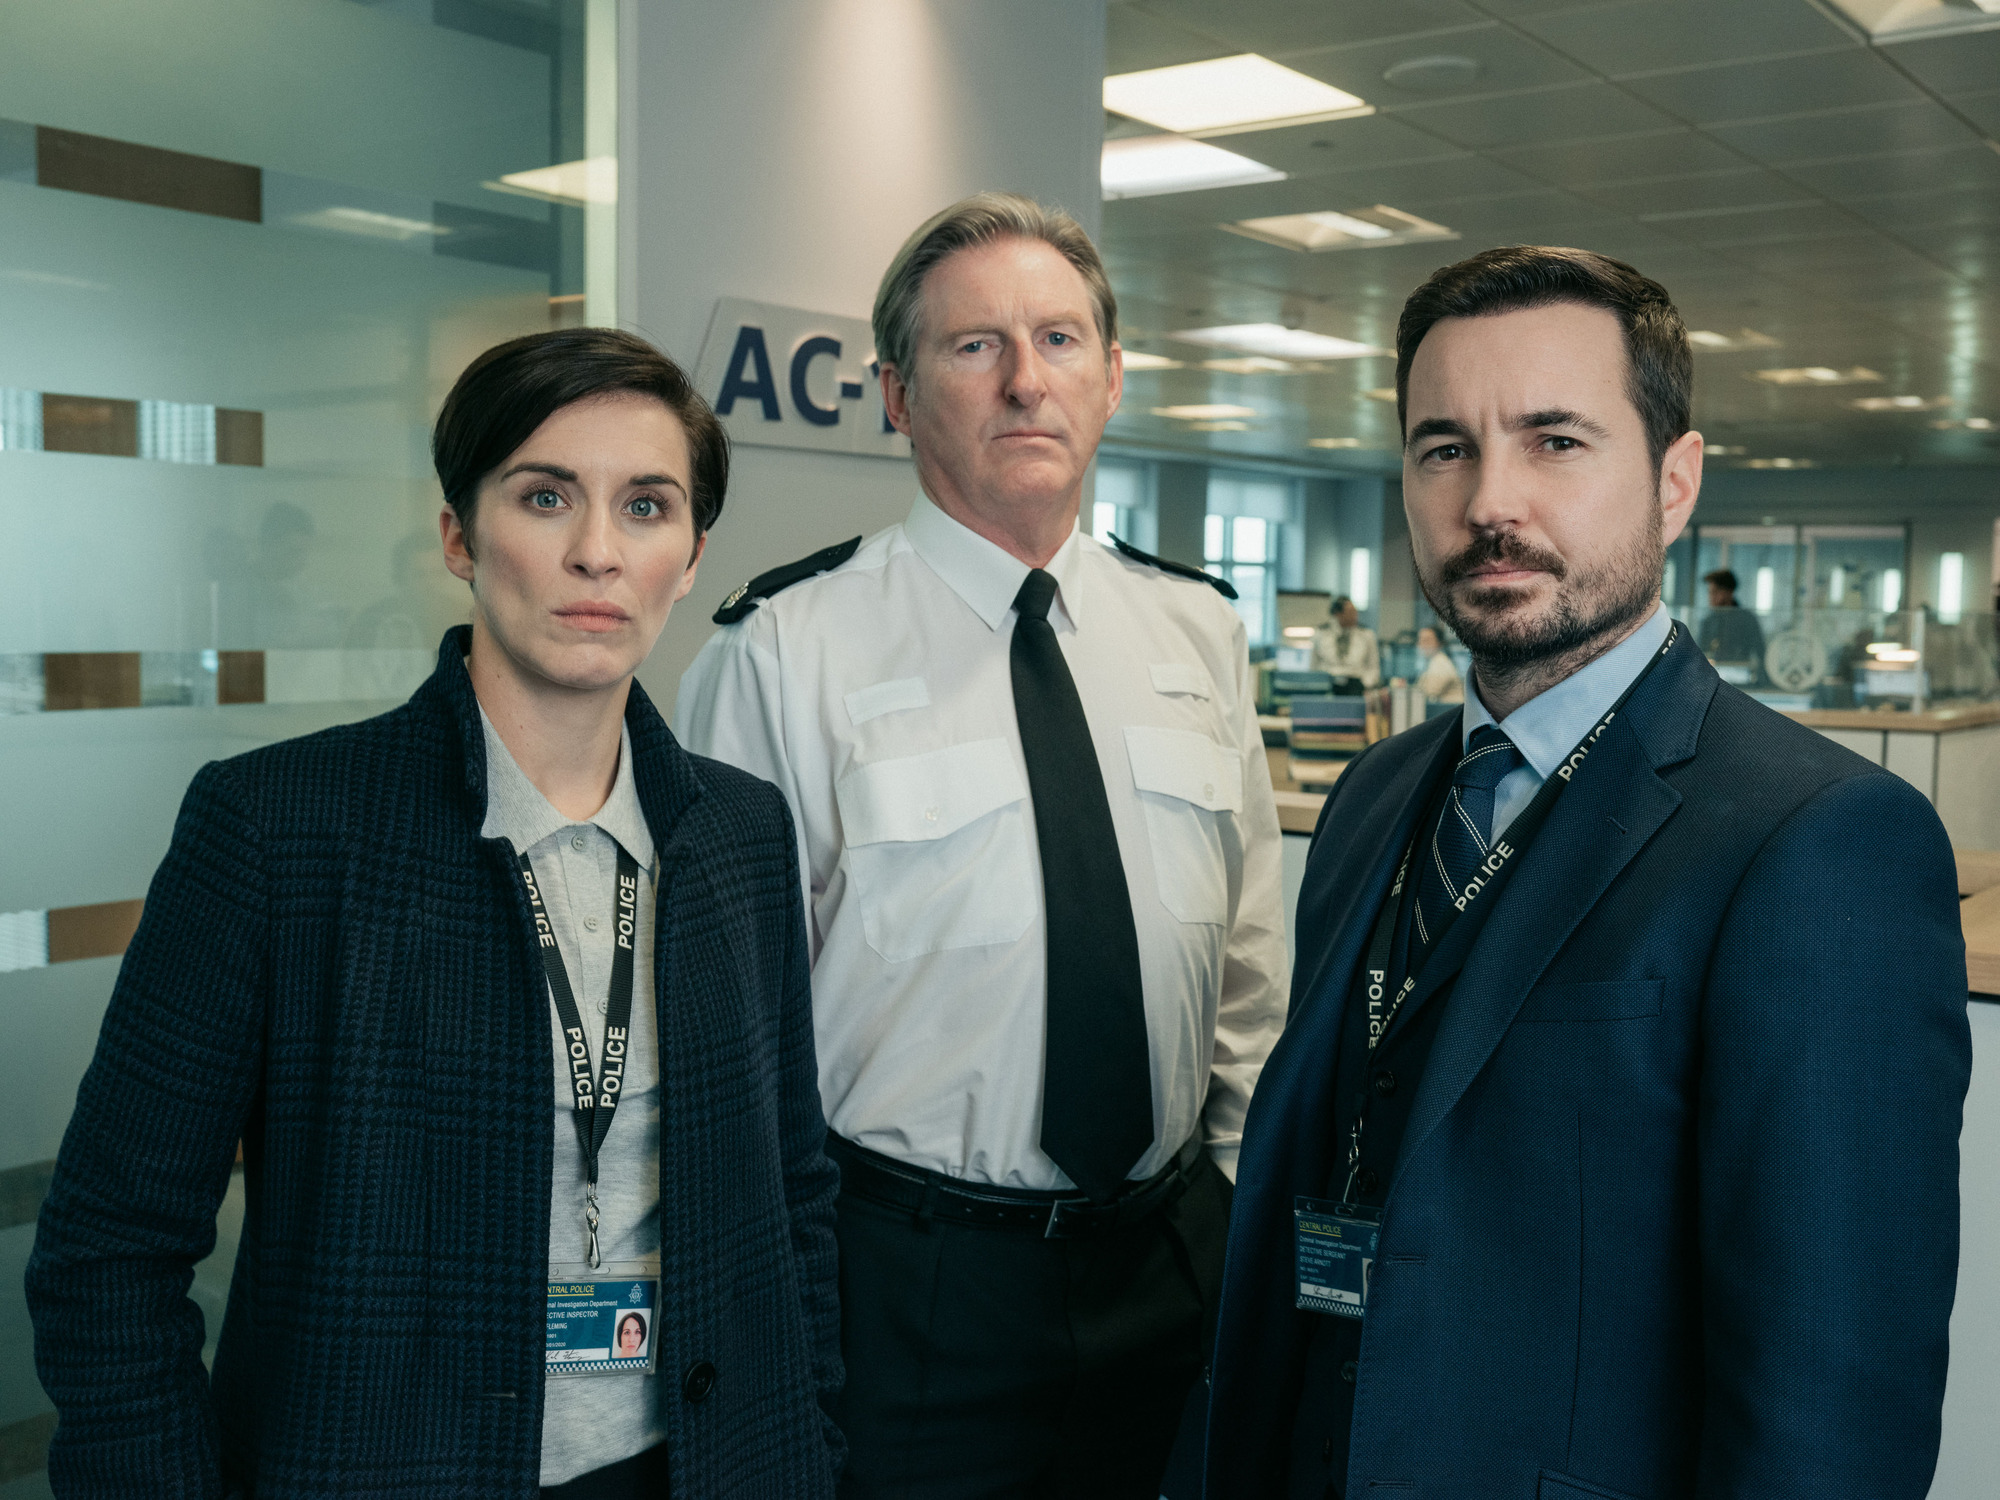 Real undercover cop gives clue to H's identity in Line Of Duty